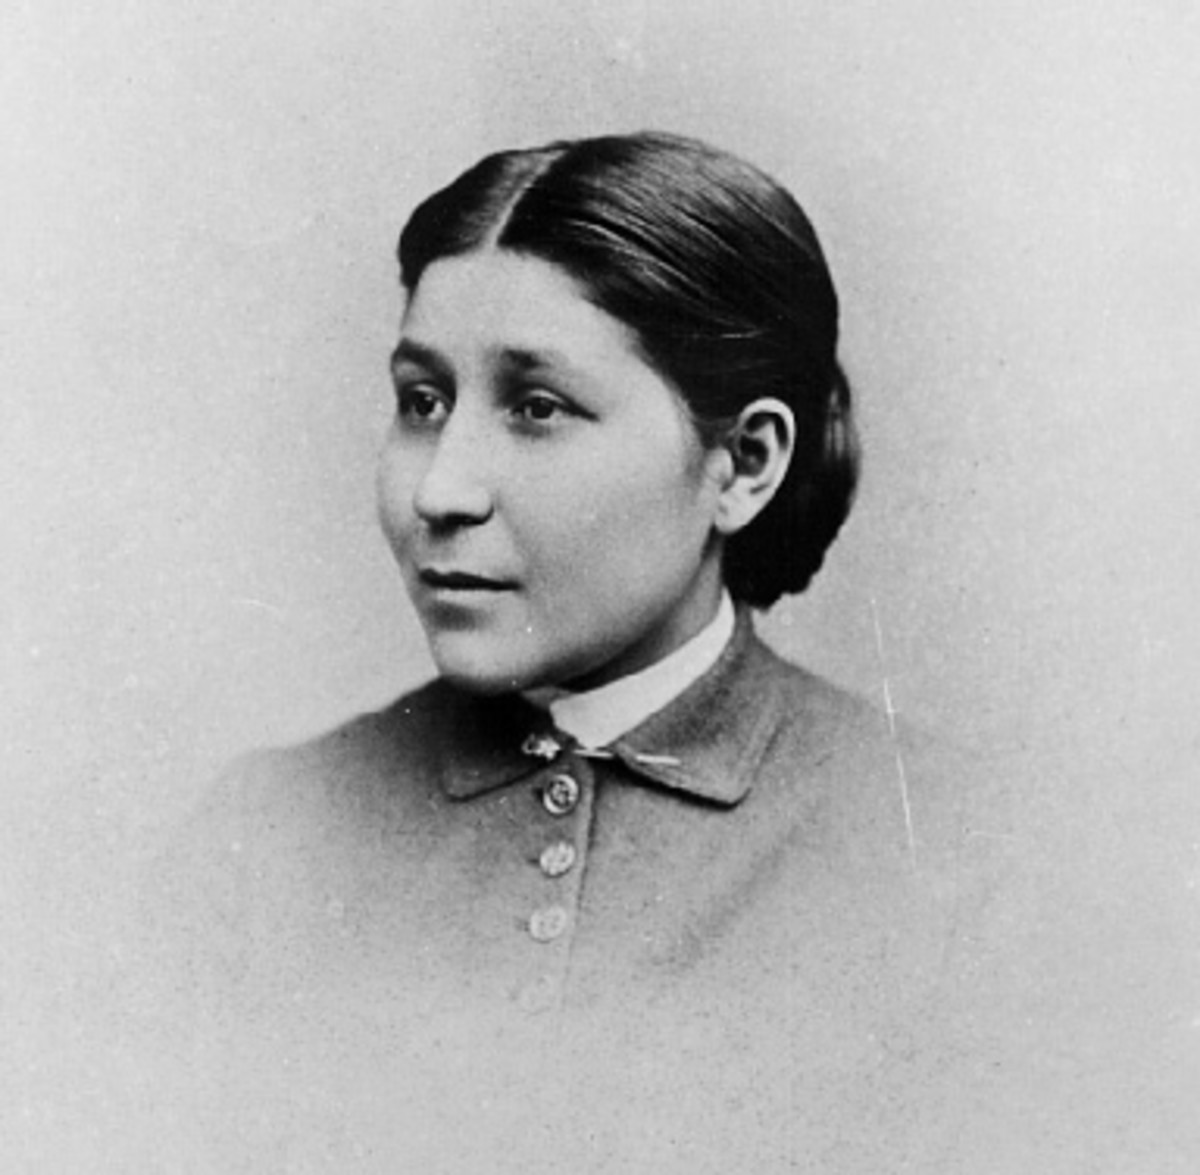 Dr. Susan La Flesche Picotte was the first Native American woman in the United States to receive a medical degree. (Courtesy National Anthropological Archives/Smithsonian Institution)